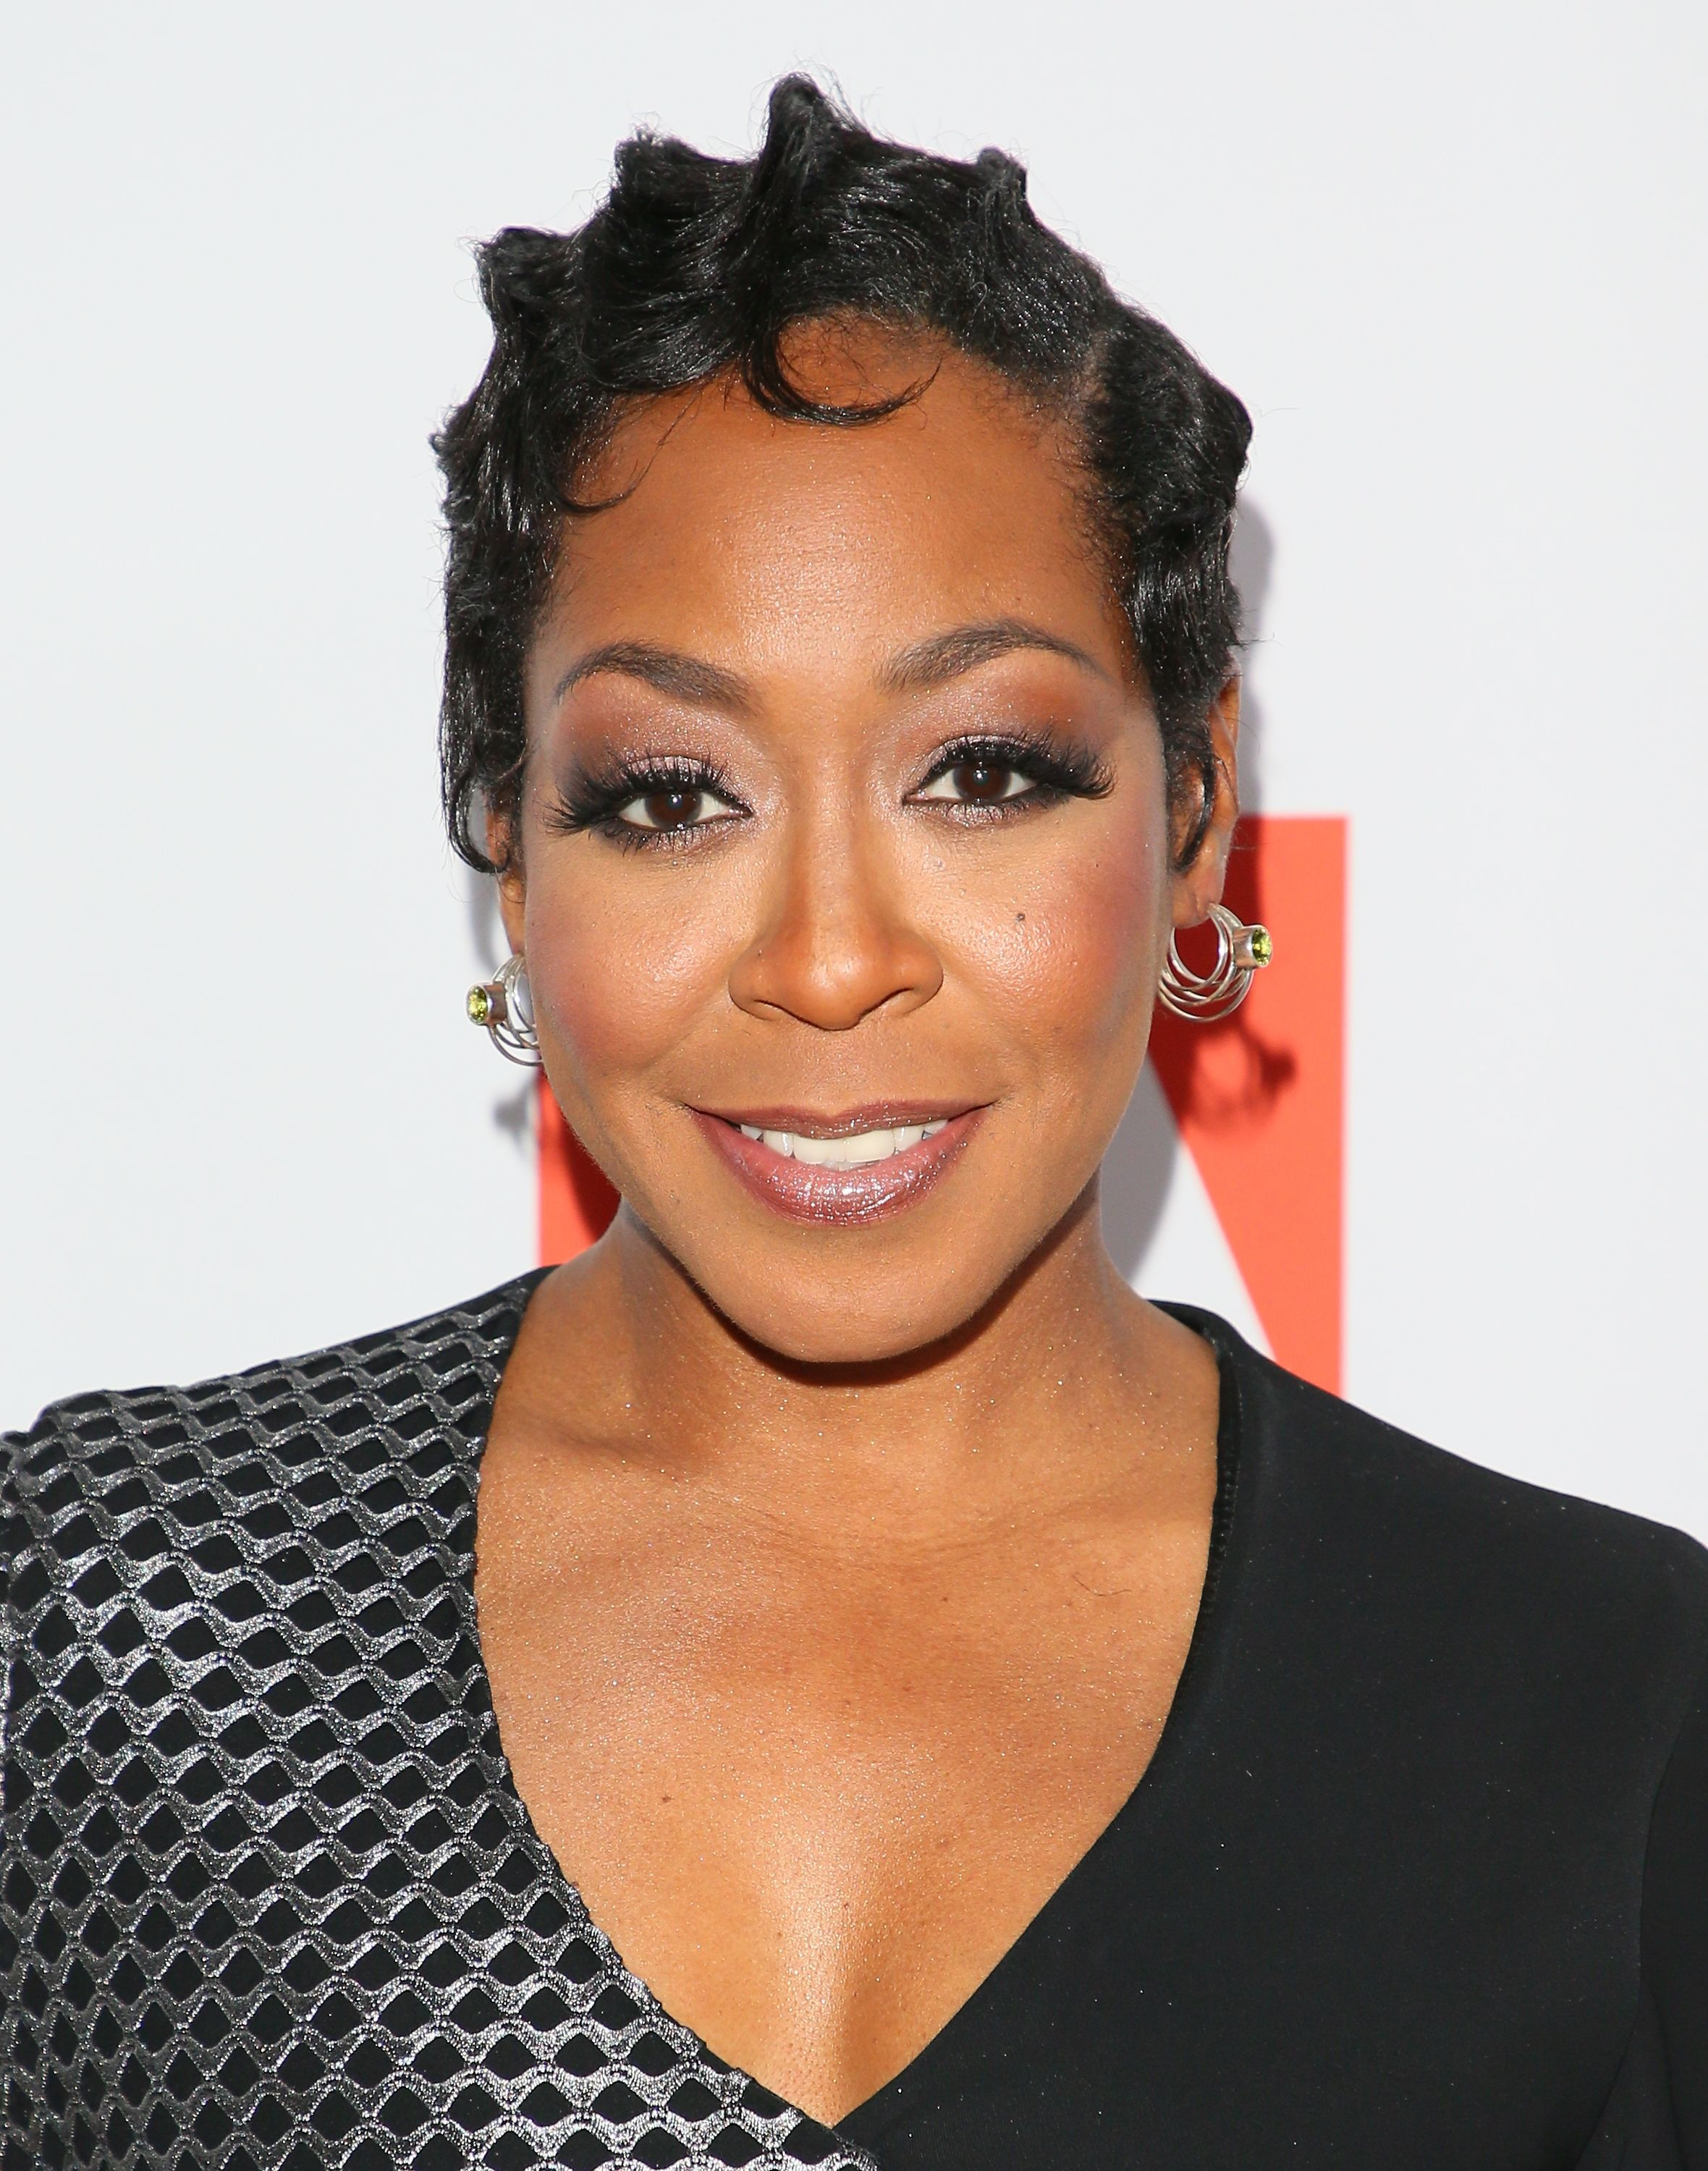 Tichina Arnold attends the 68th Annual ACE Eddie Awards on January 27, 2018. | Photo: Getty Images